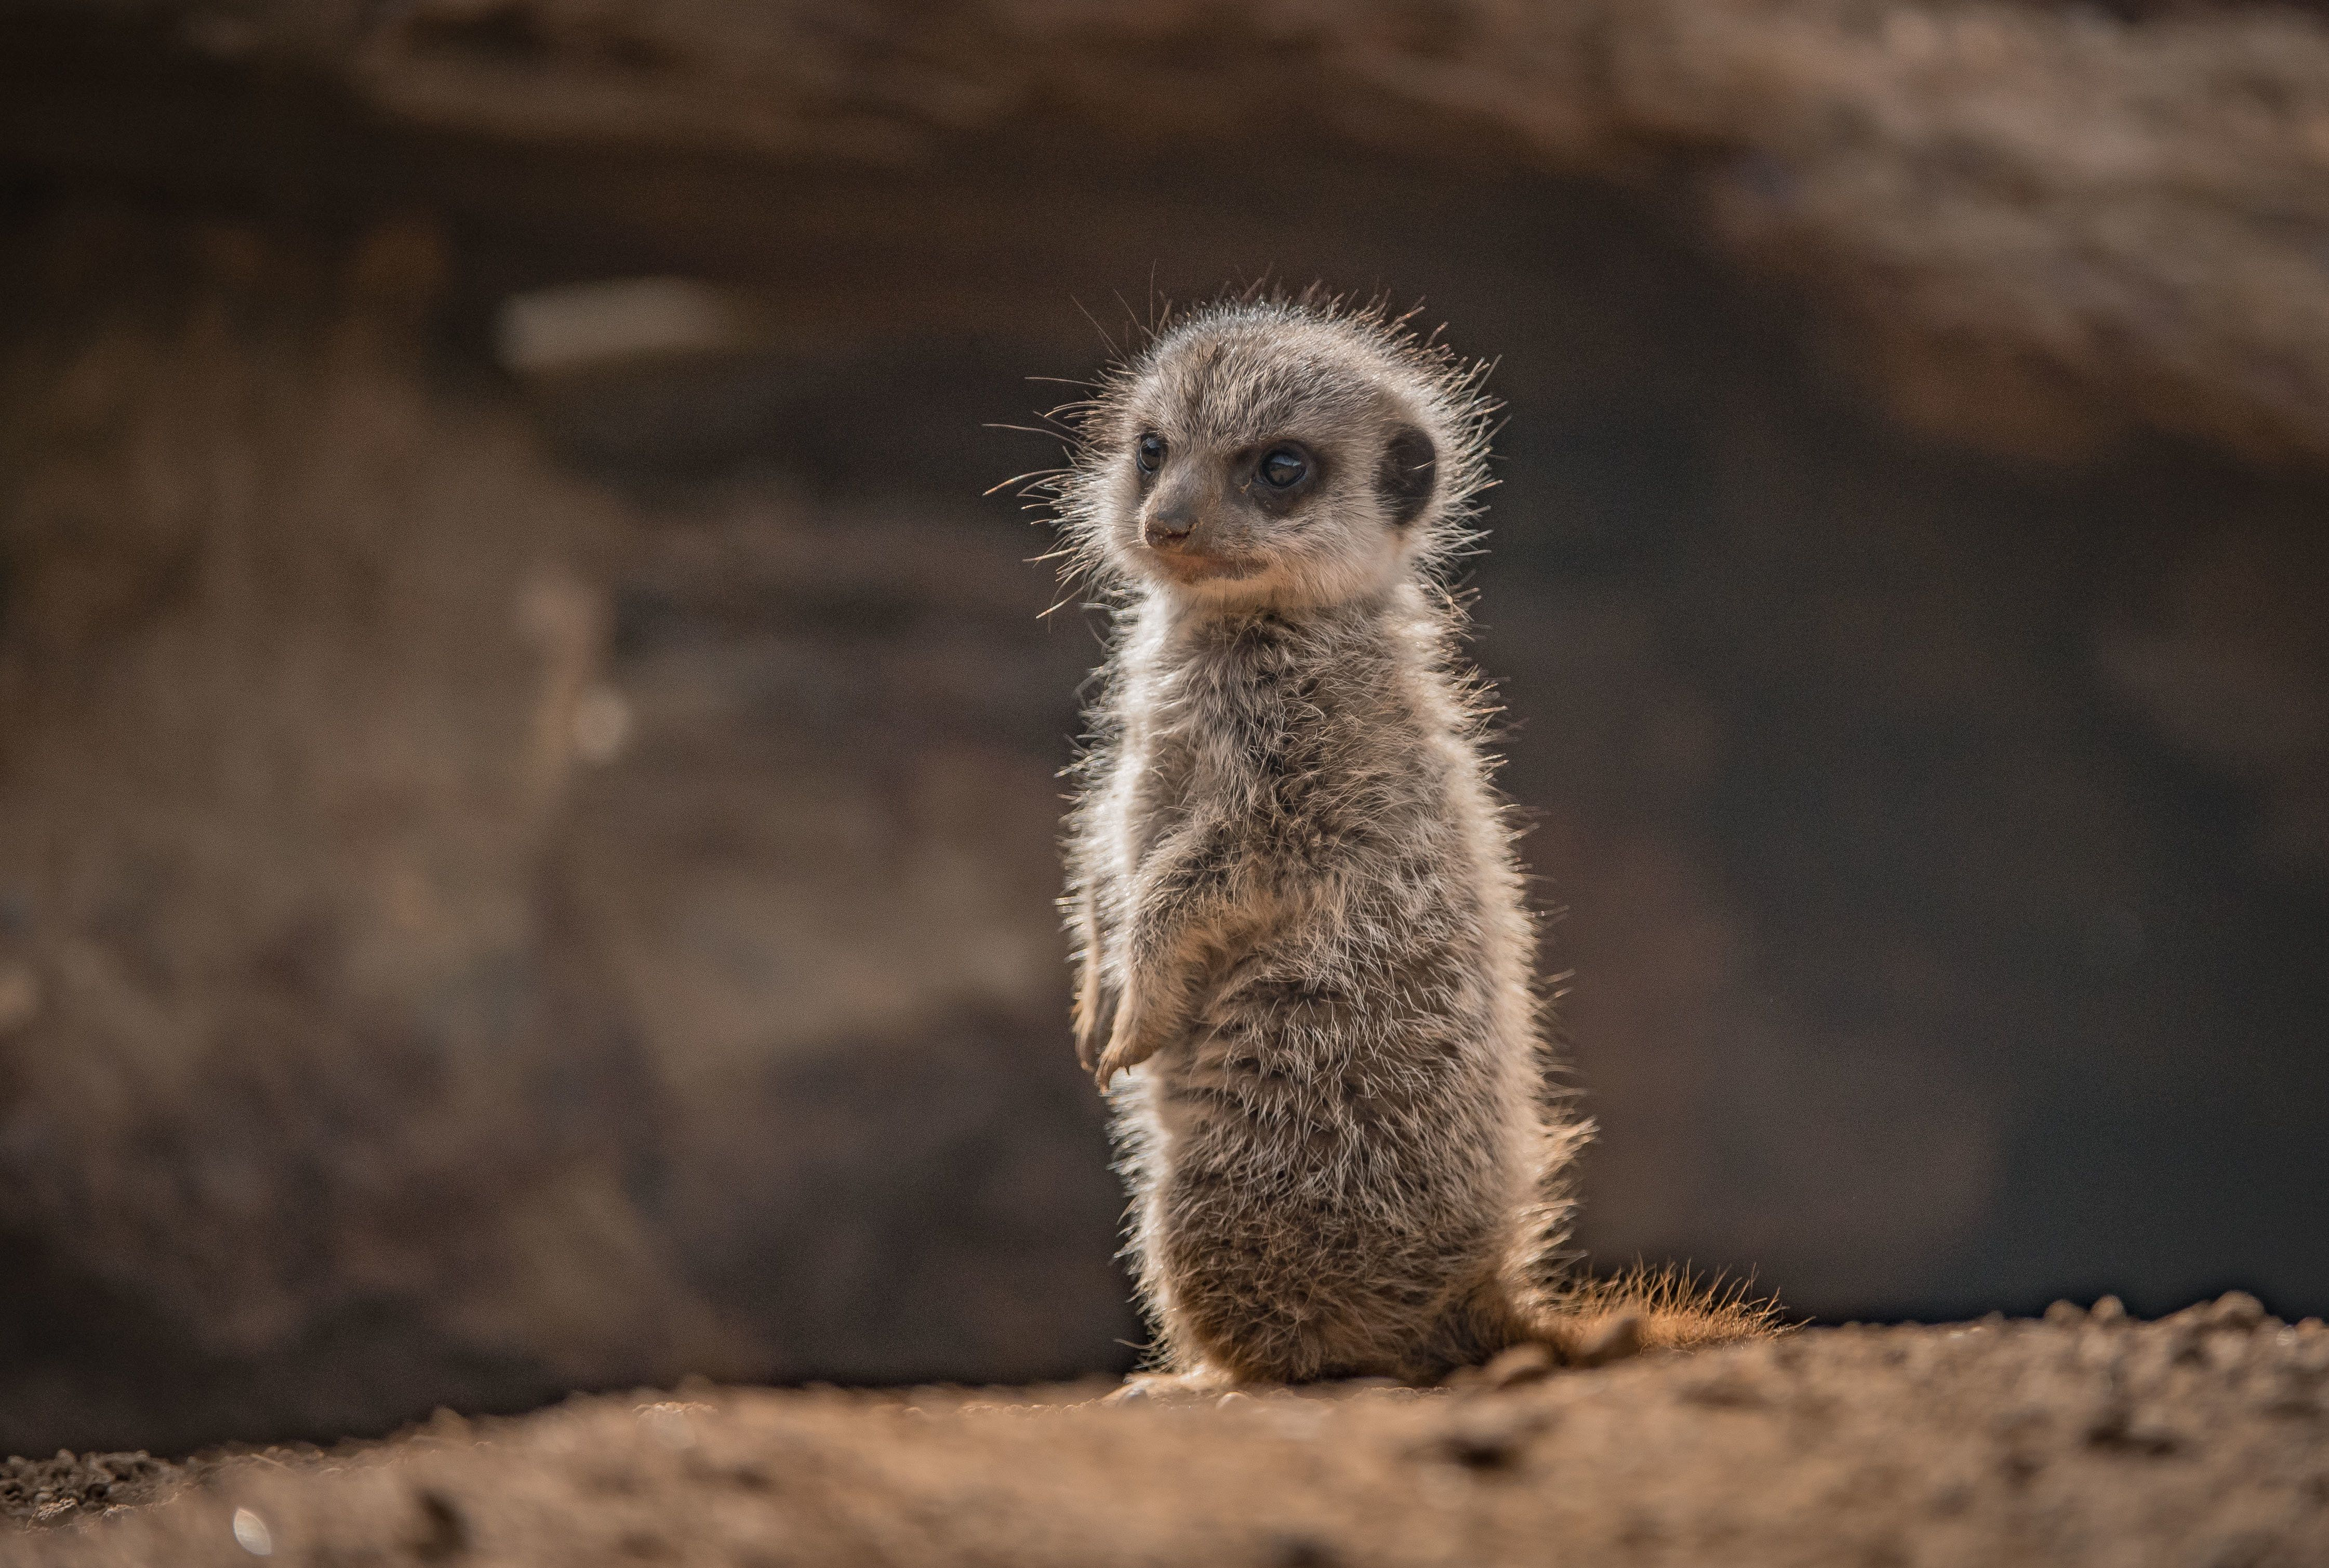 5 Cute Animals To End The Week: Baby Meerkats And L'Oréal The